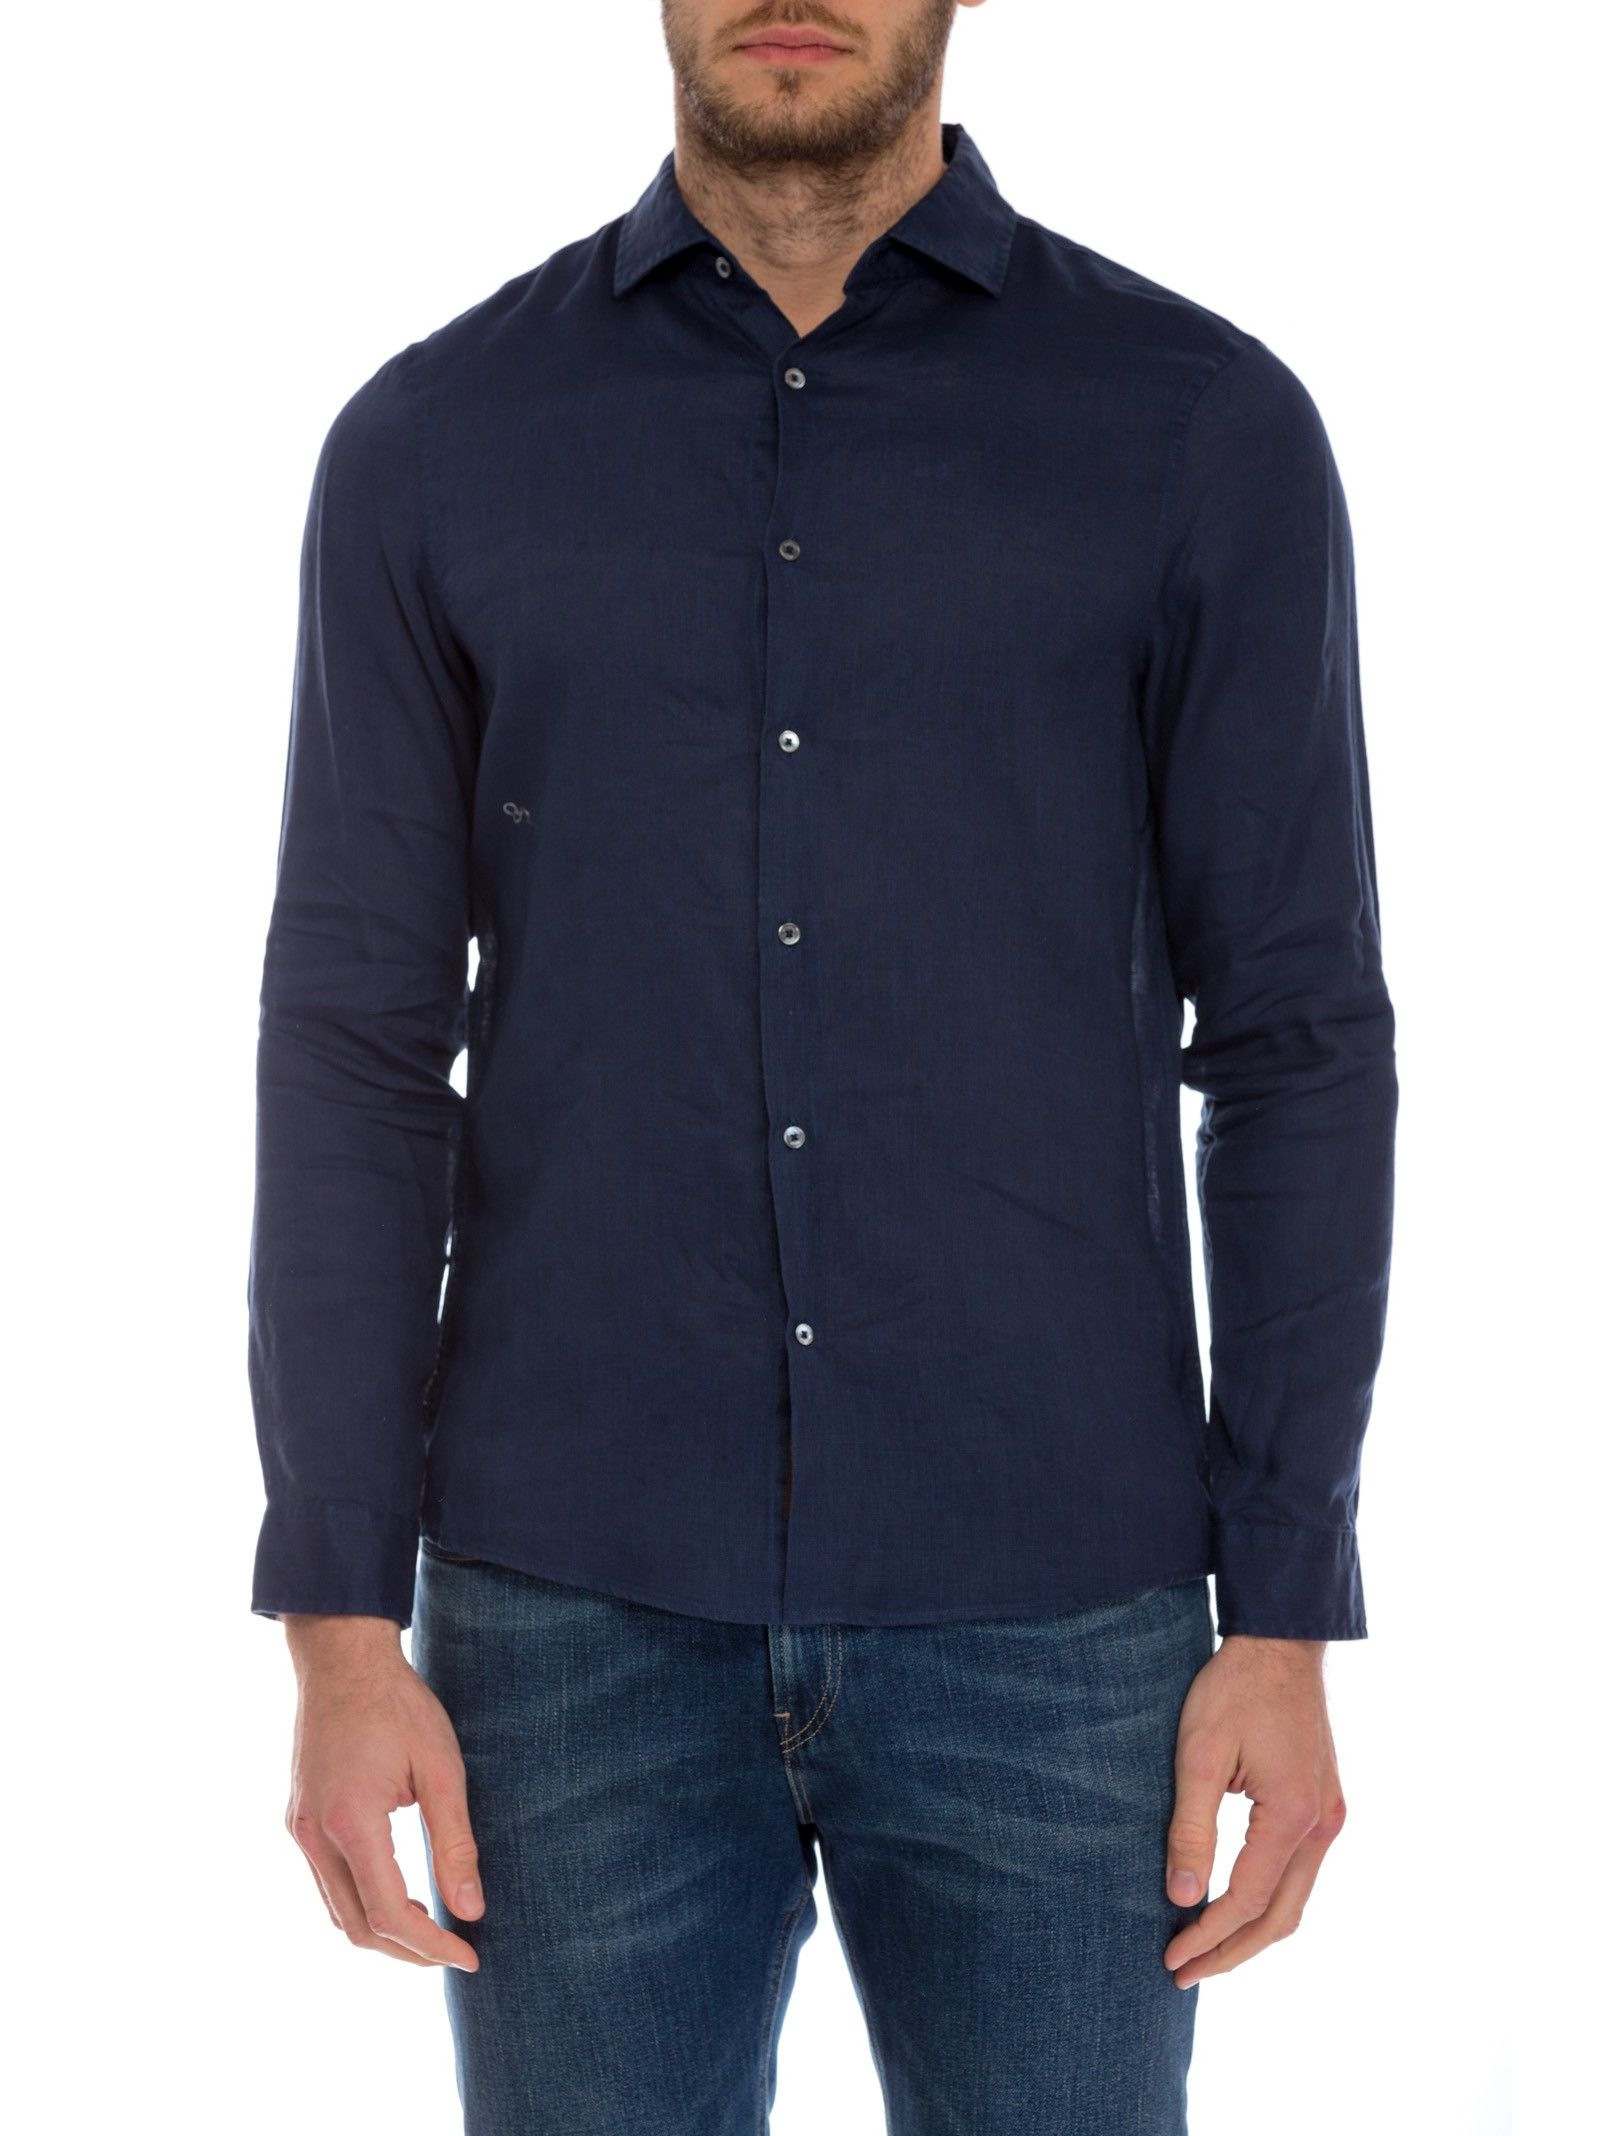 michael kors male 201920 michael kors classic button down shirt